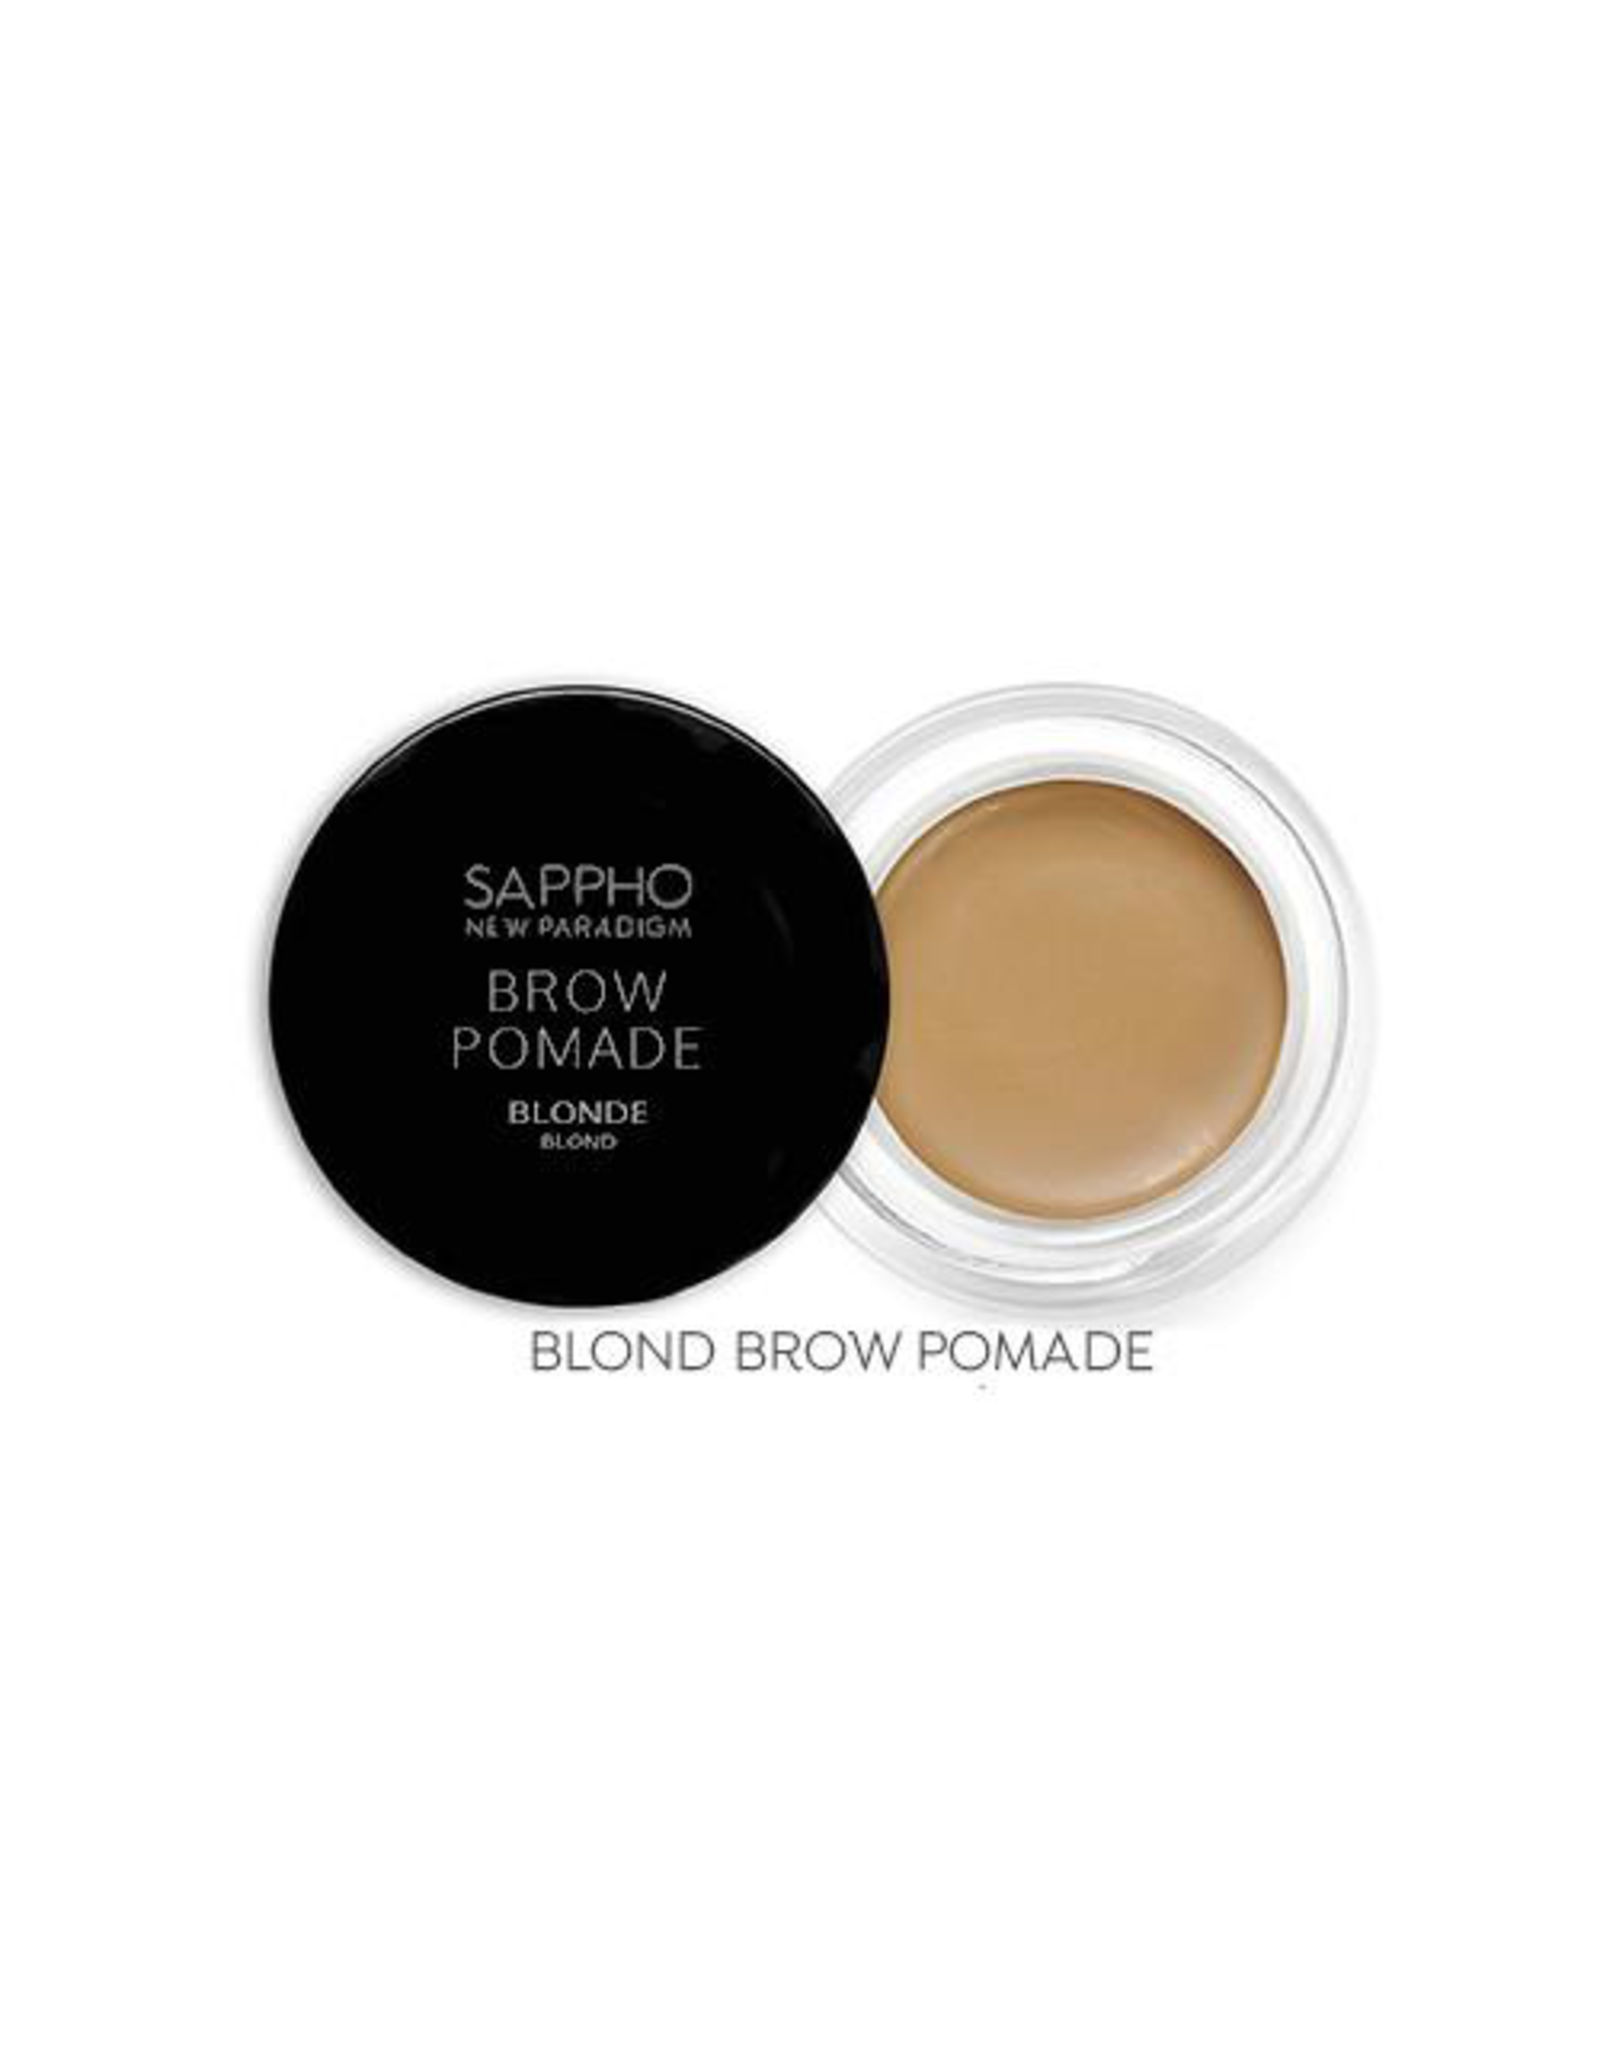 SAPPHO Brow Pomade - Blonde